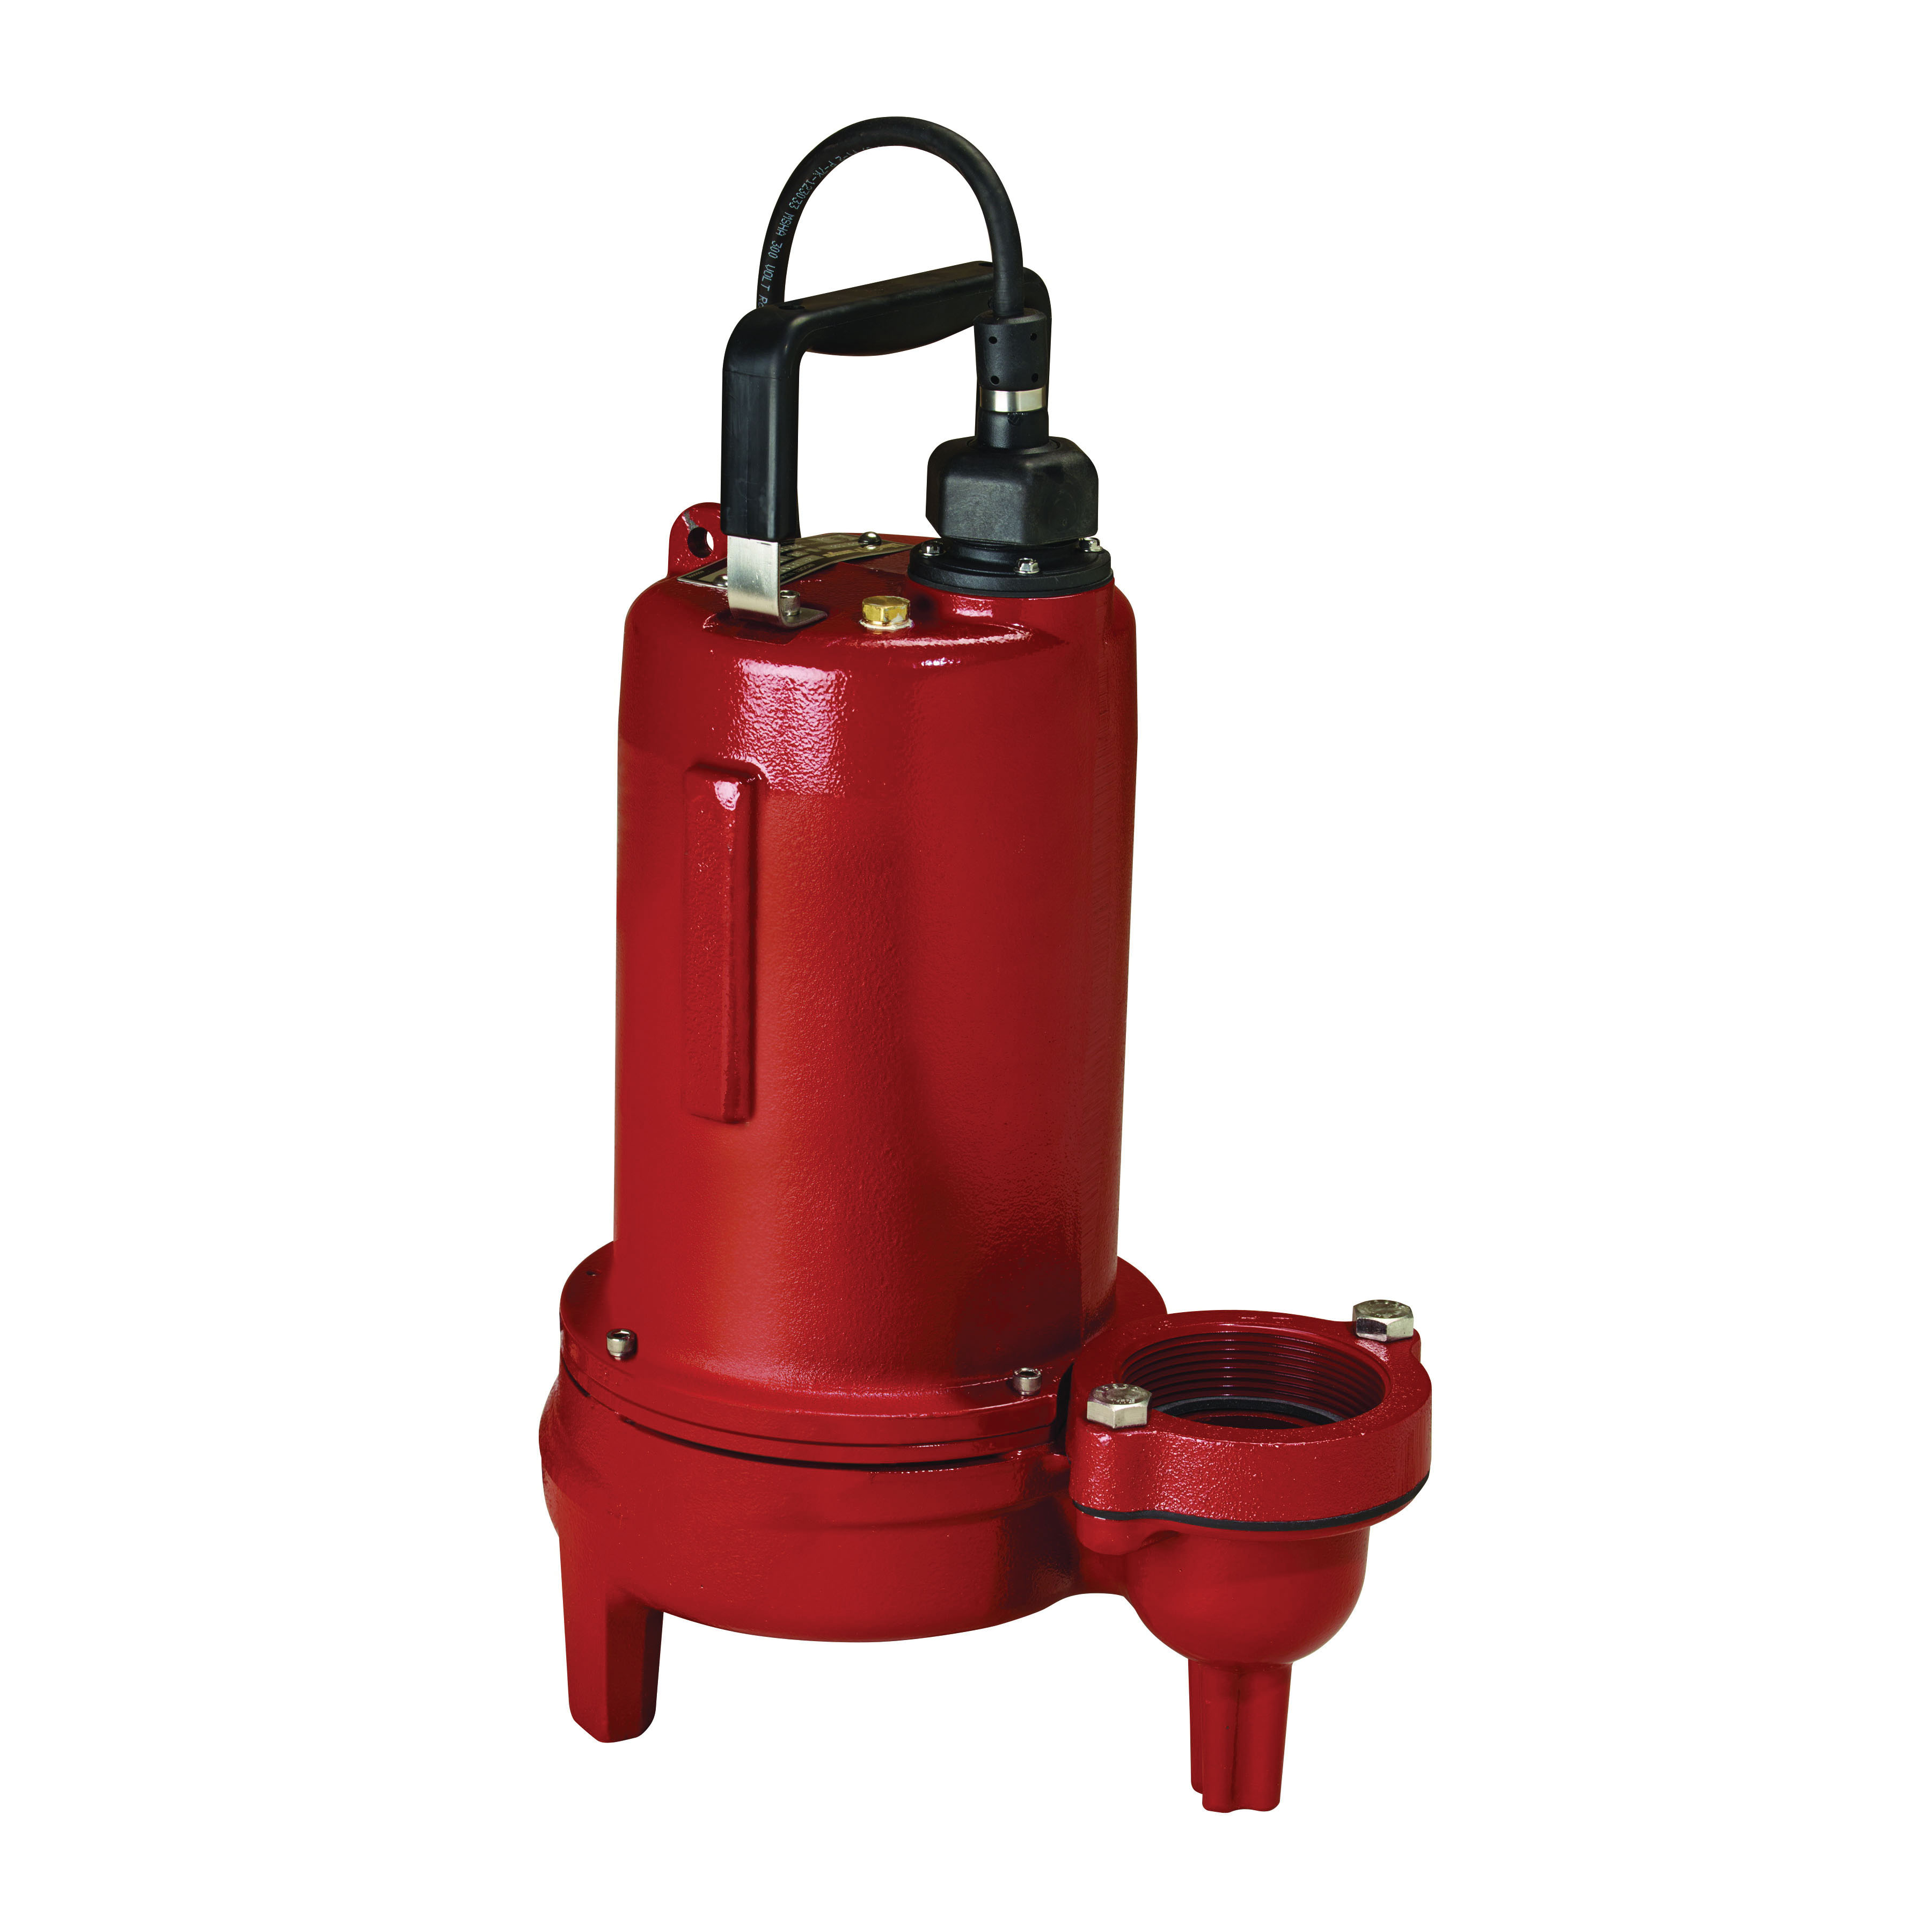 Liberty Pumps® LE72M2-2 Manual Submersible Sewage Pump, 3/4 hp, 208 to 230 VAC, 2 in Flanged Outlet, Cast Iron, 6 A Full Load/13.5 A Locked Rotor, 1 ph